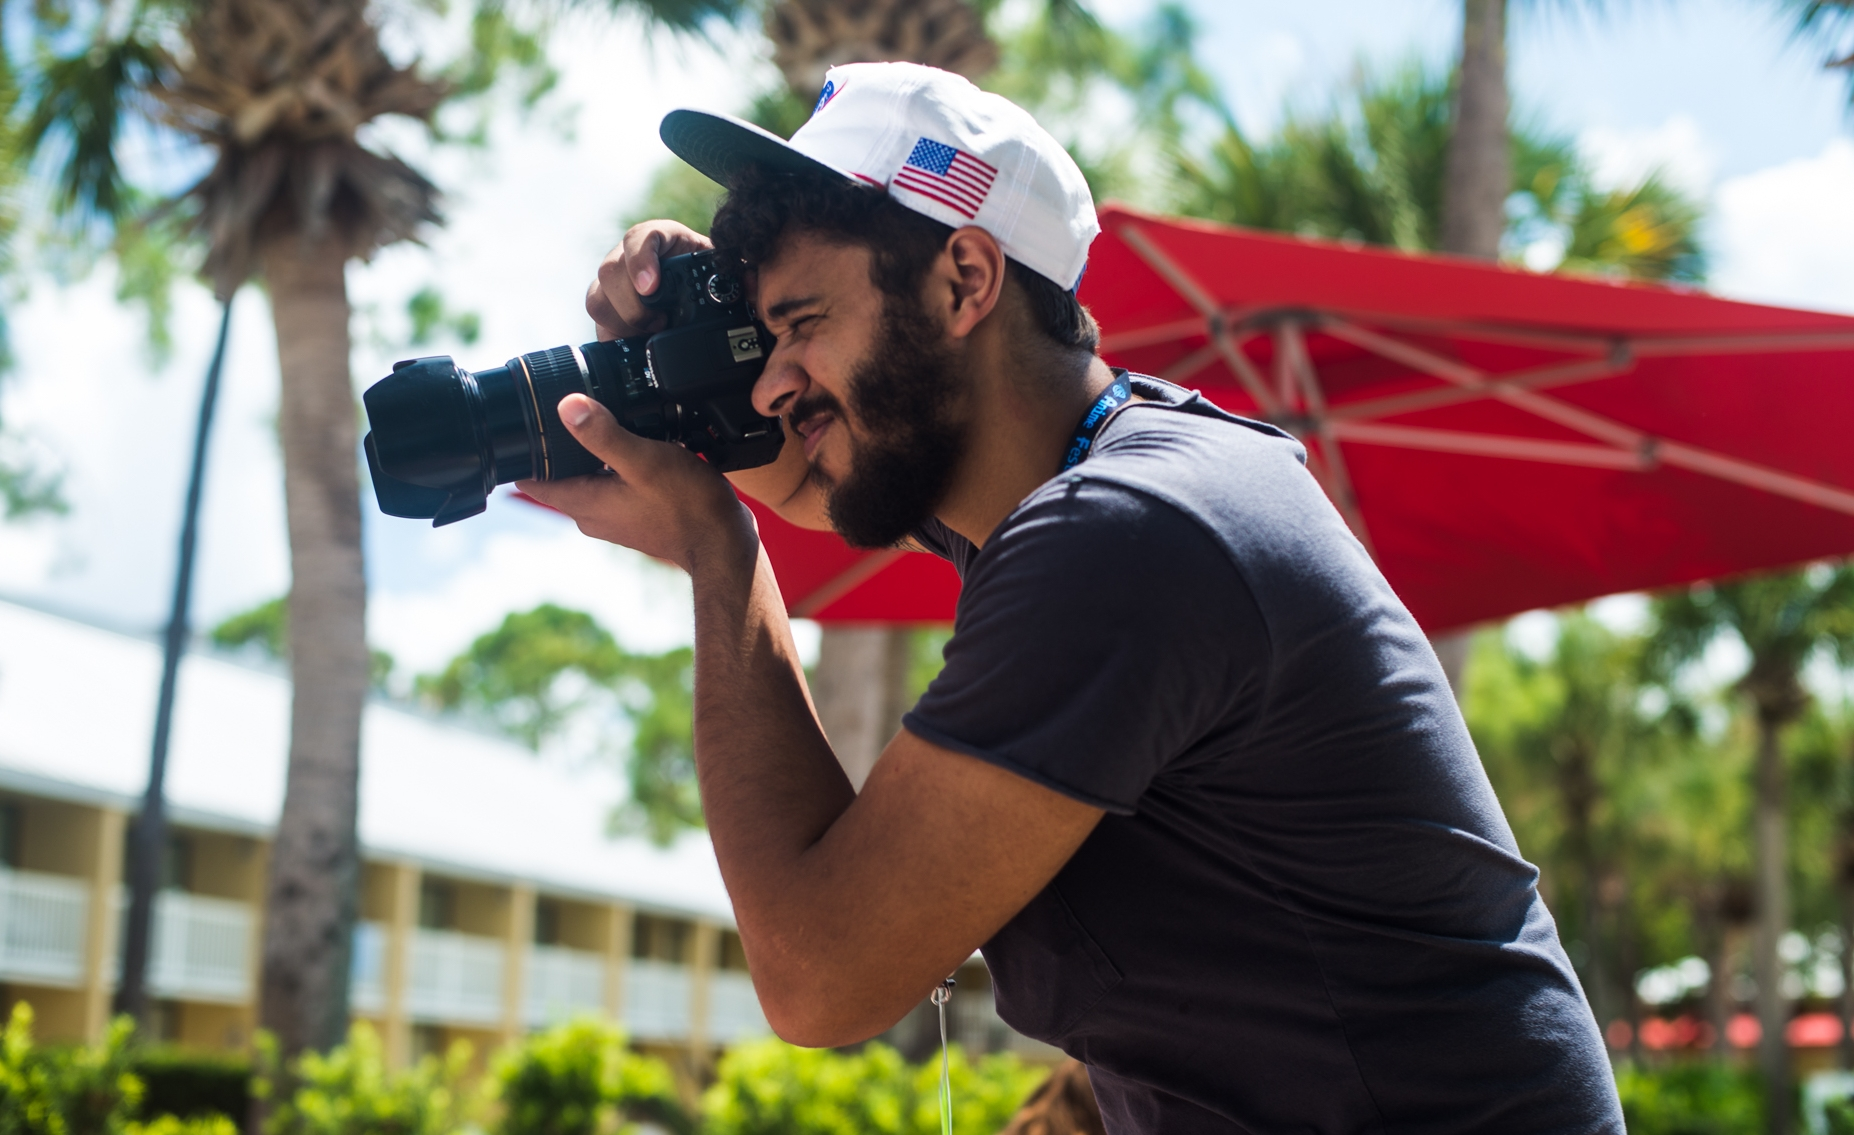 Photographer, Videographer, and Friend - Based in Central FloridaOrlando | Tampa | Lakeland | Gainesville__________________________________CONTACT:dSPENCERphoto@gmail.com__________________________________